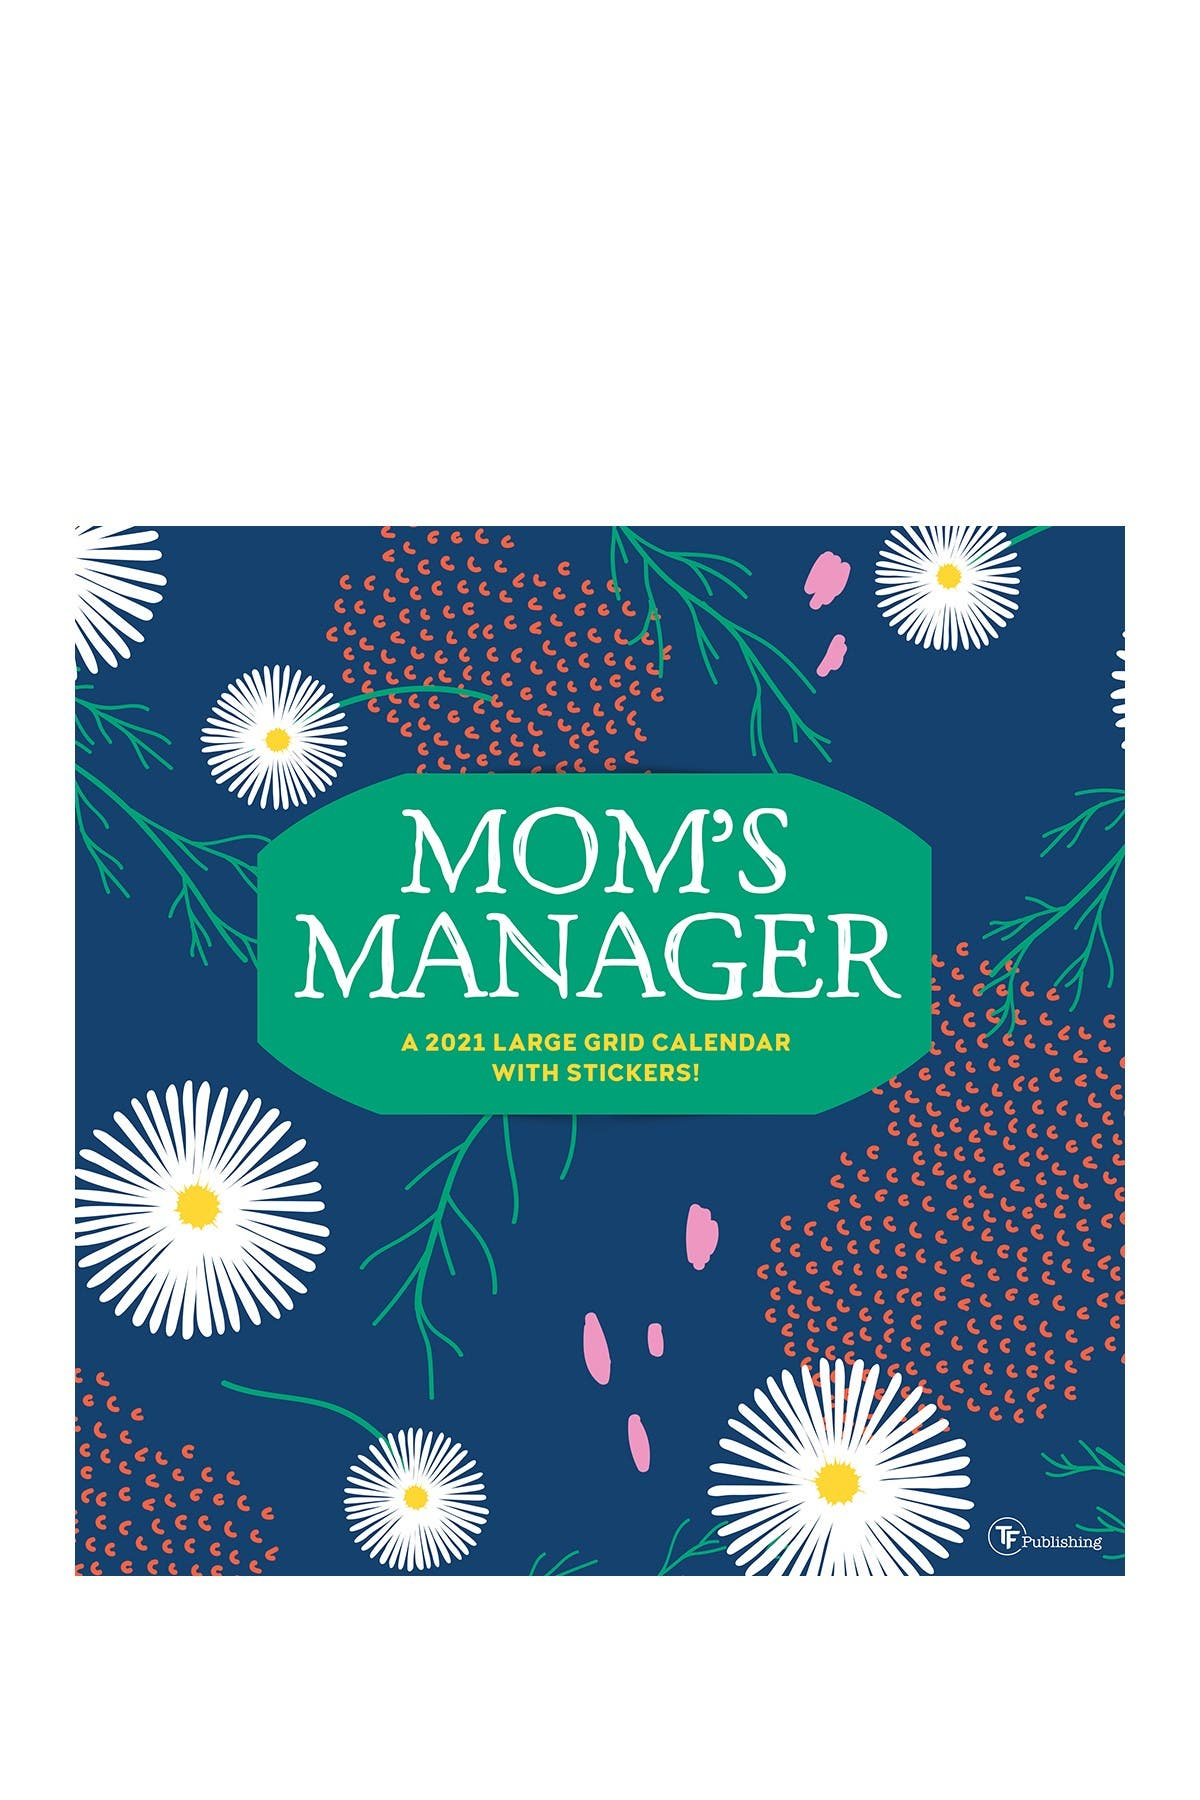 Image of TF Publishing 2021 Mom's Manager Wall Calendar